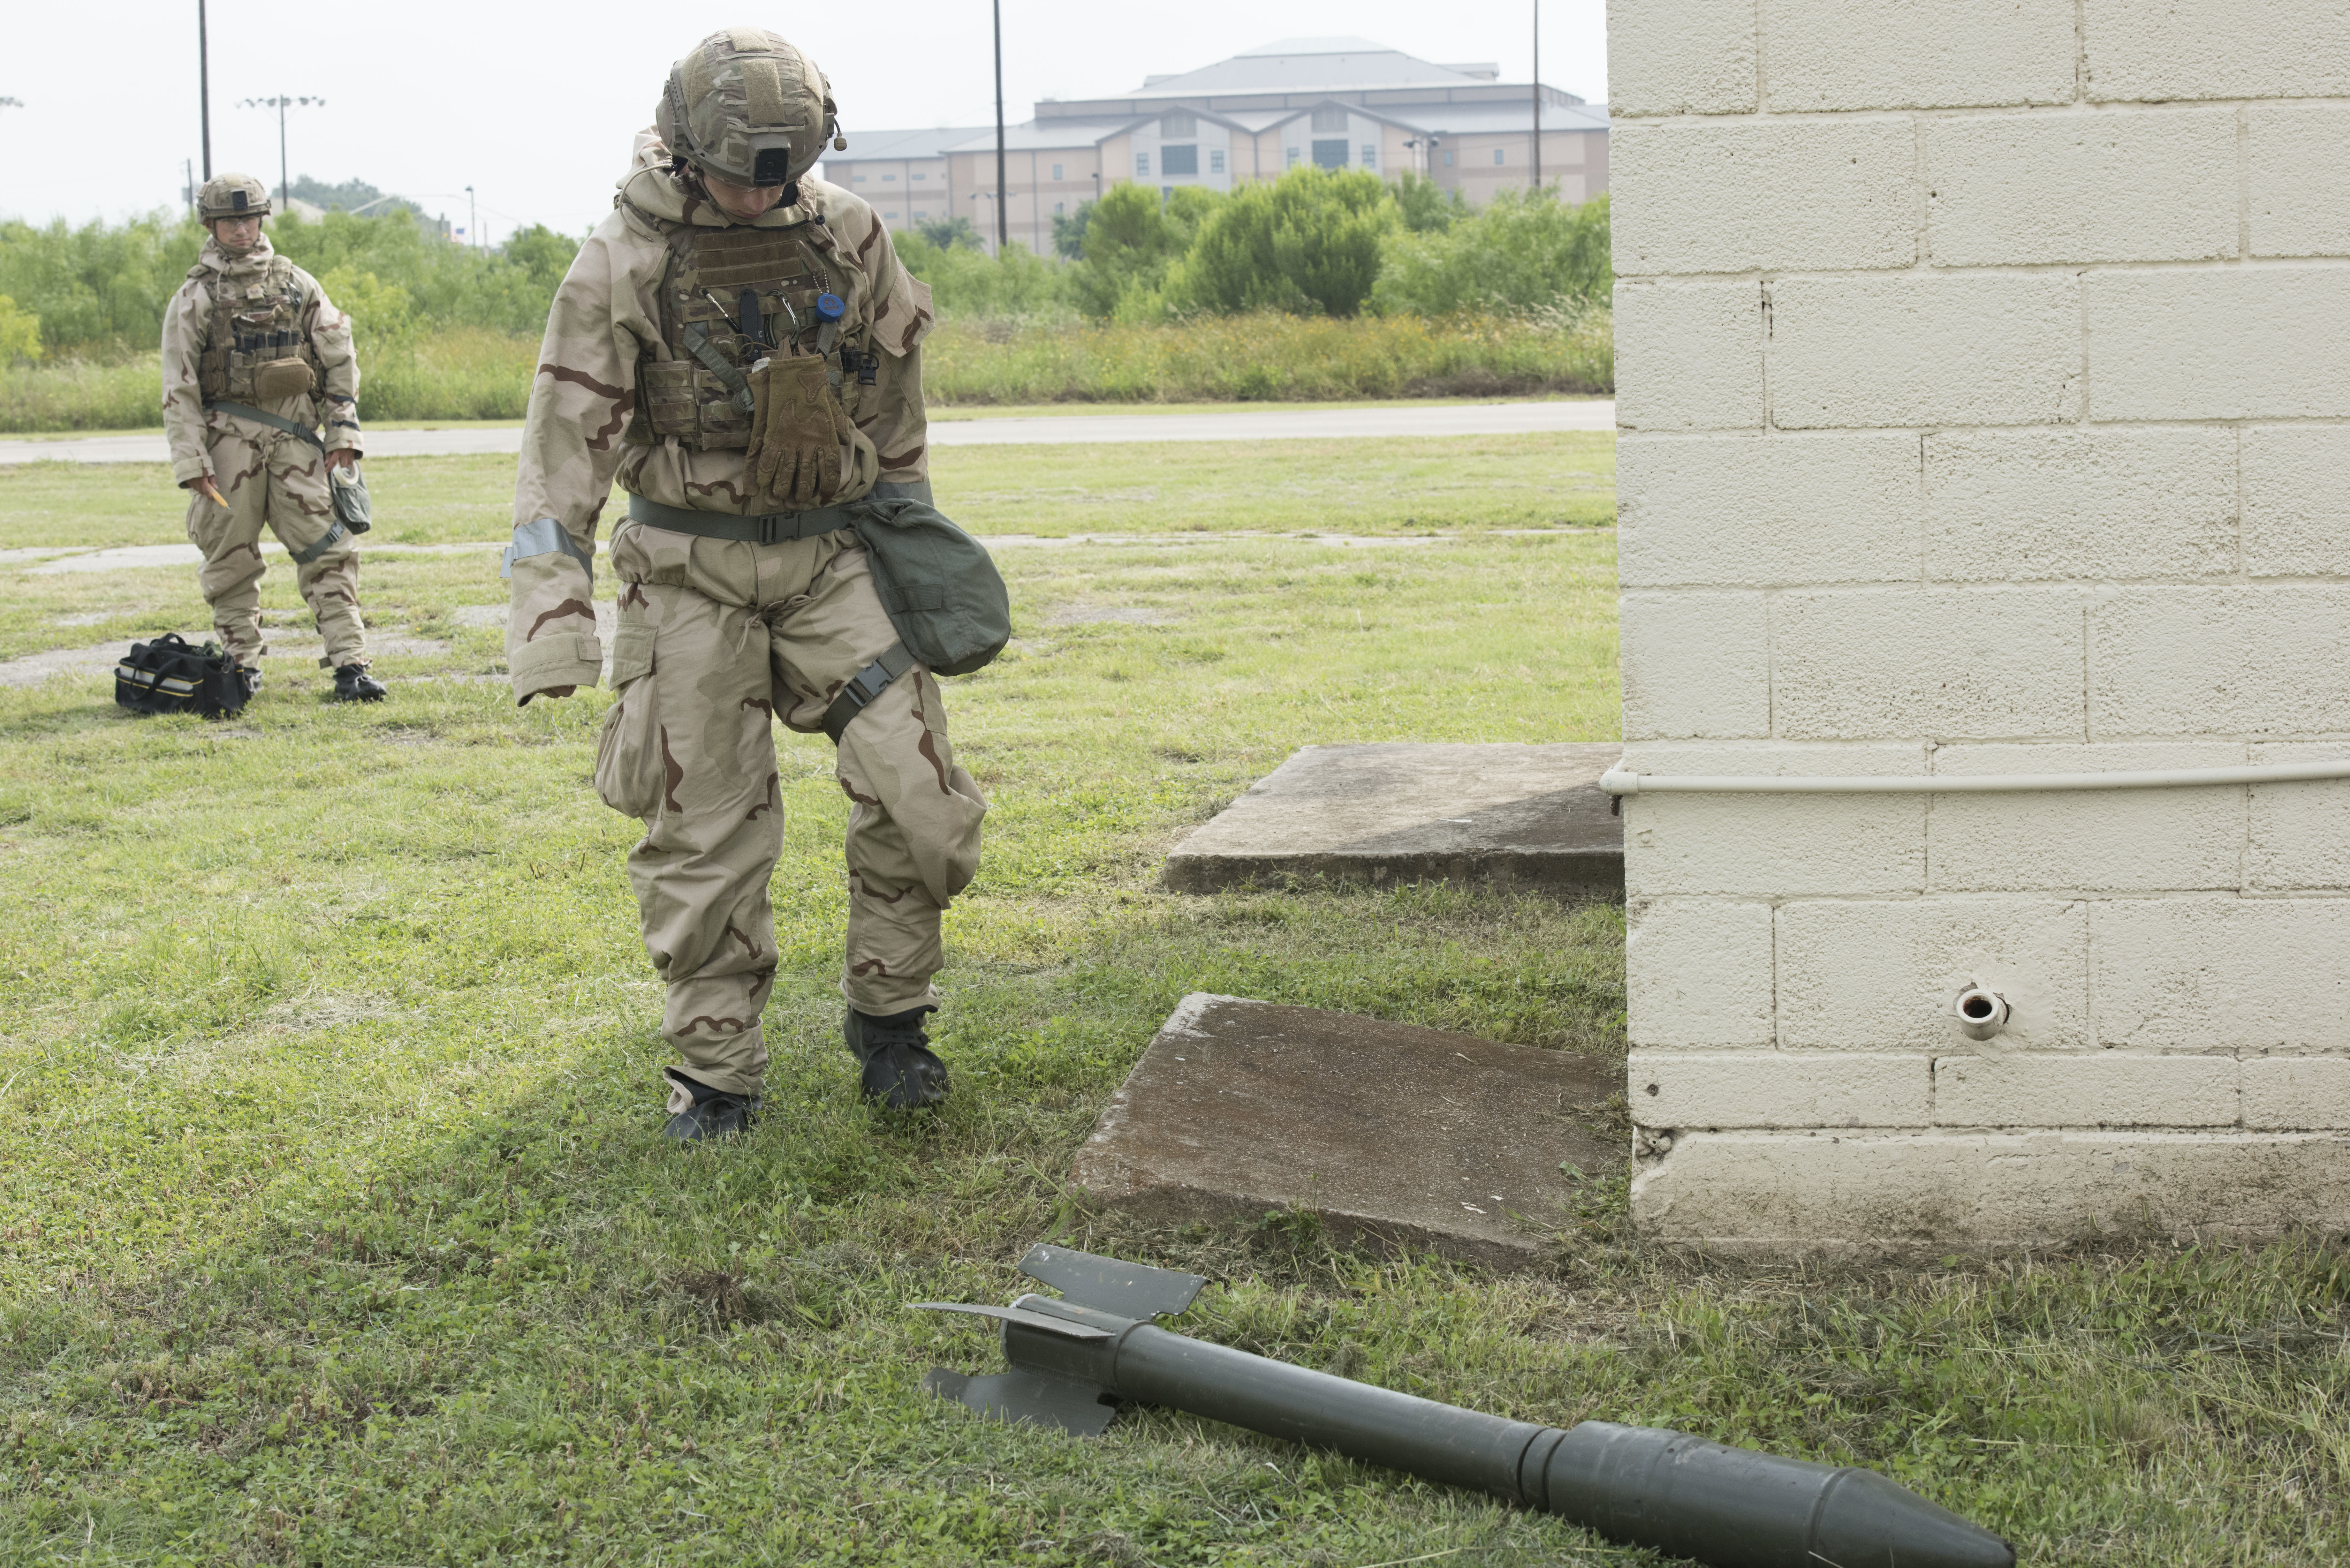 Chemical Weapons Destruction and Explosive Waste Unexploded Ordinance